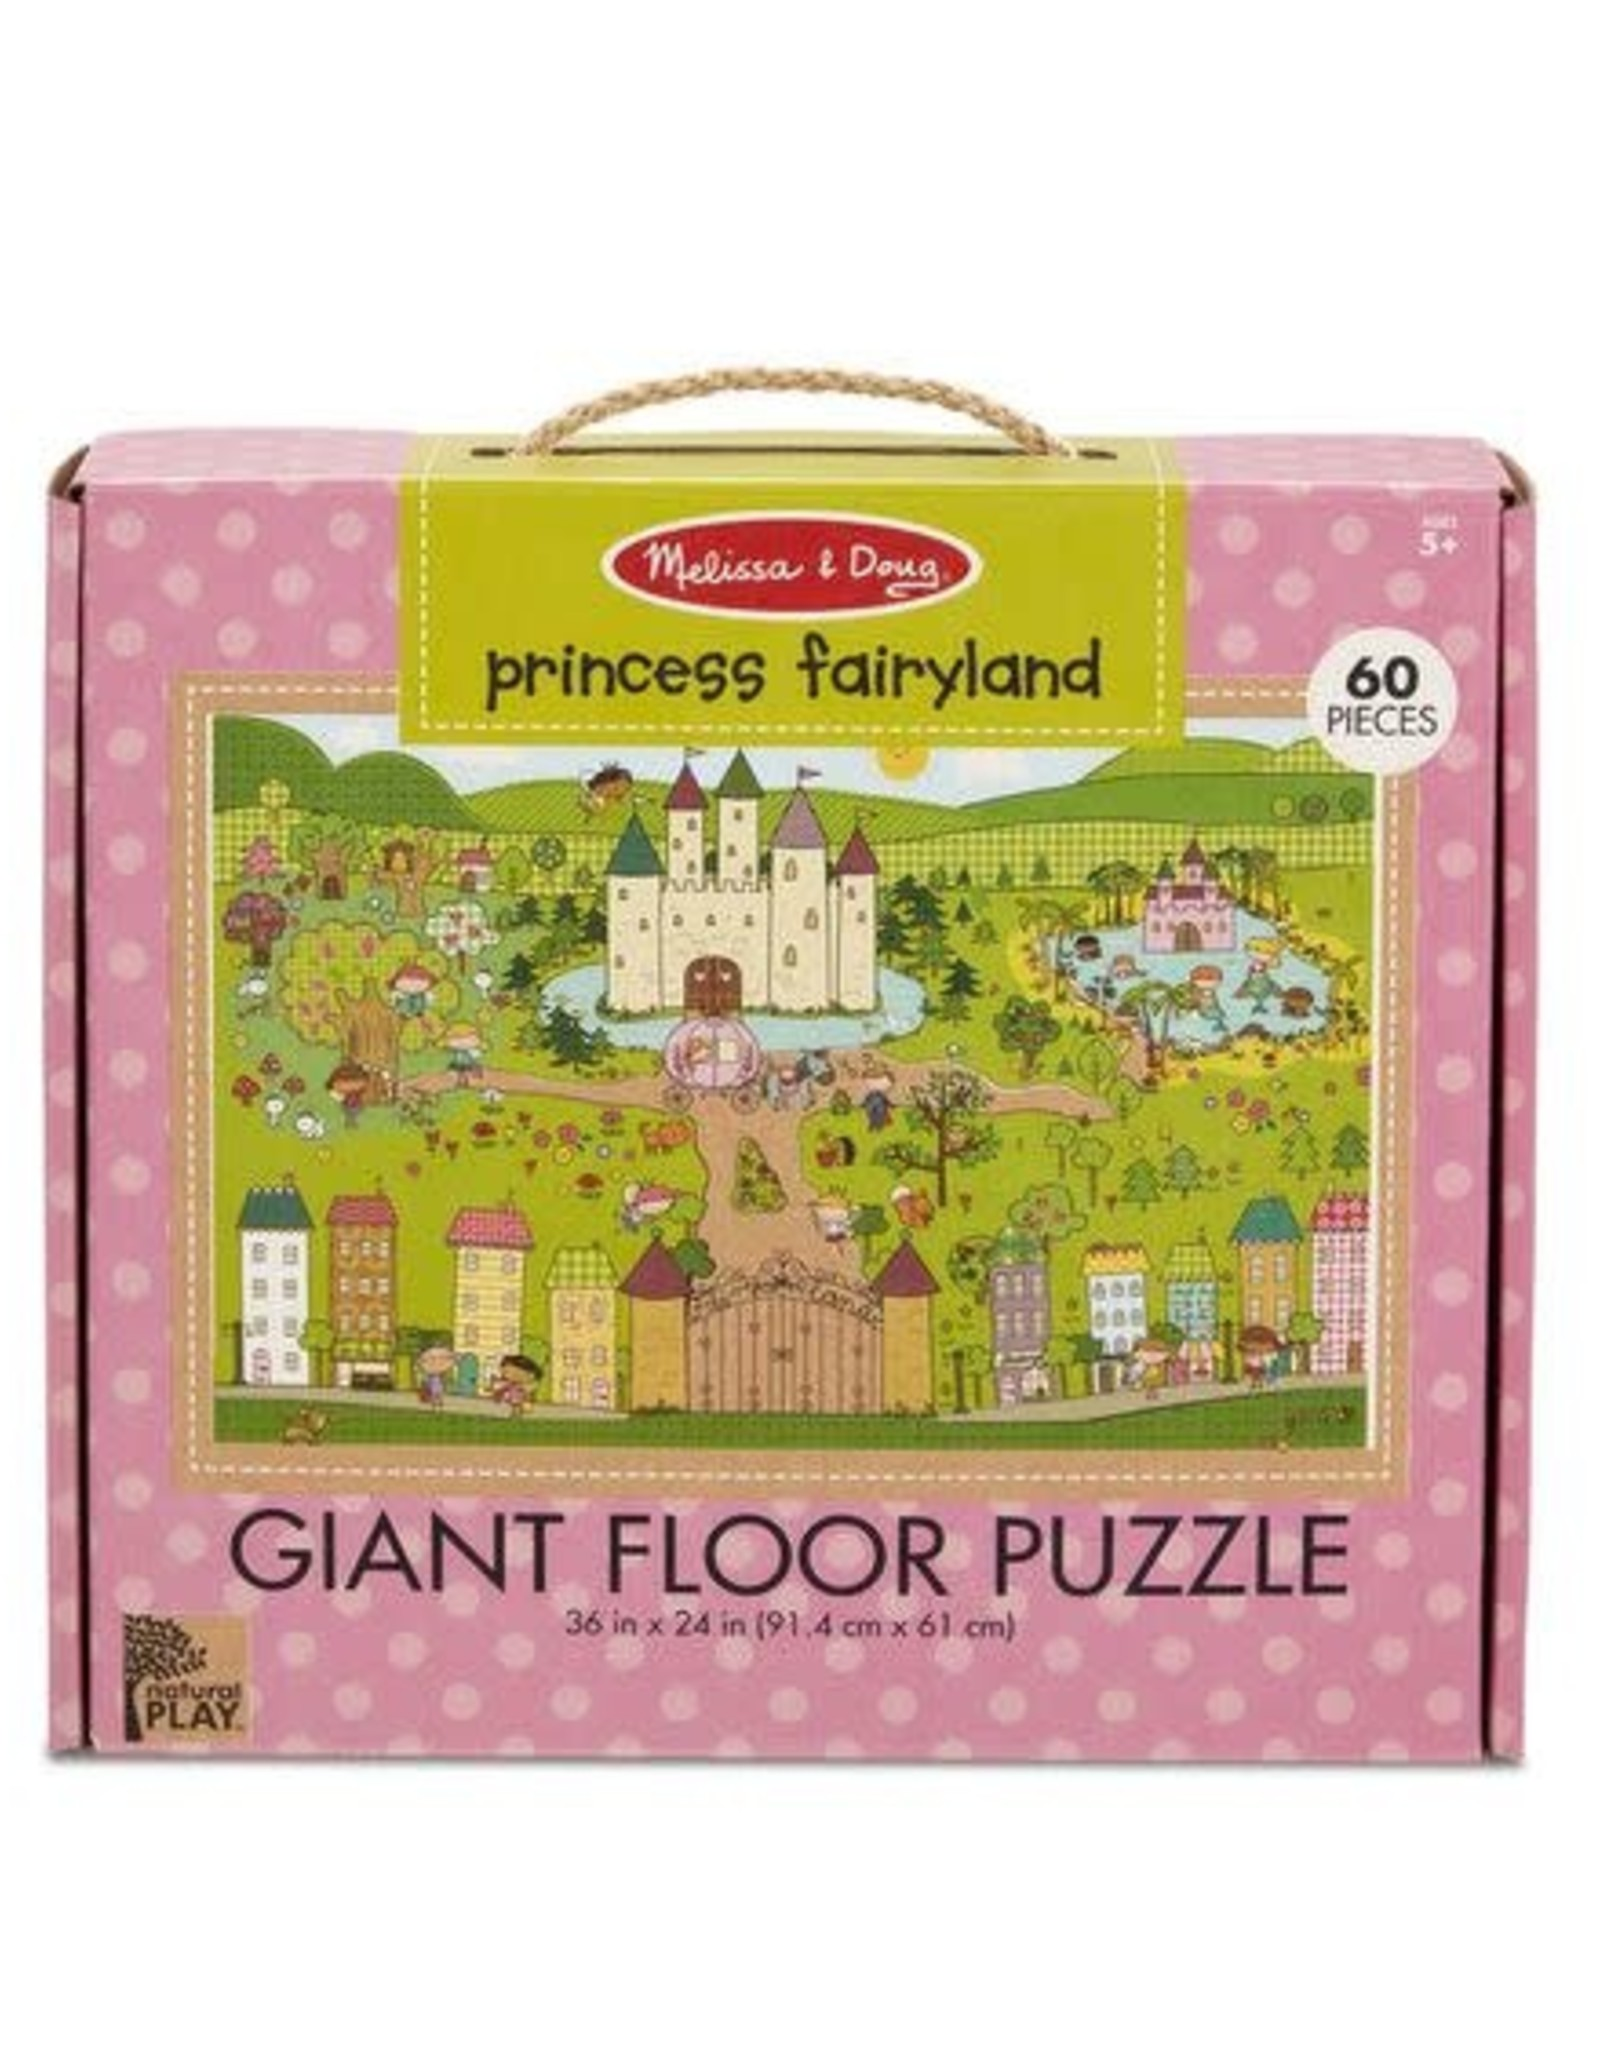 Melissa & Doug Giant Floor Puzzle Princess Fairyland 60pc